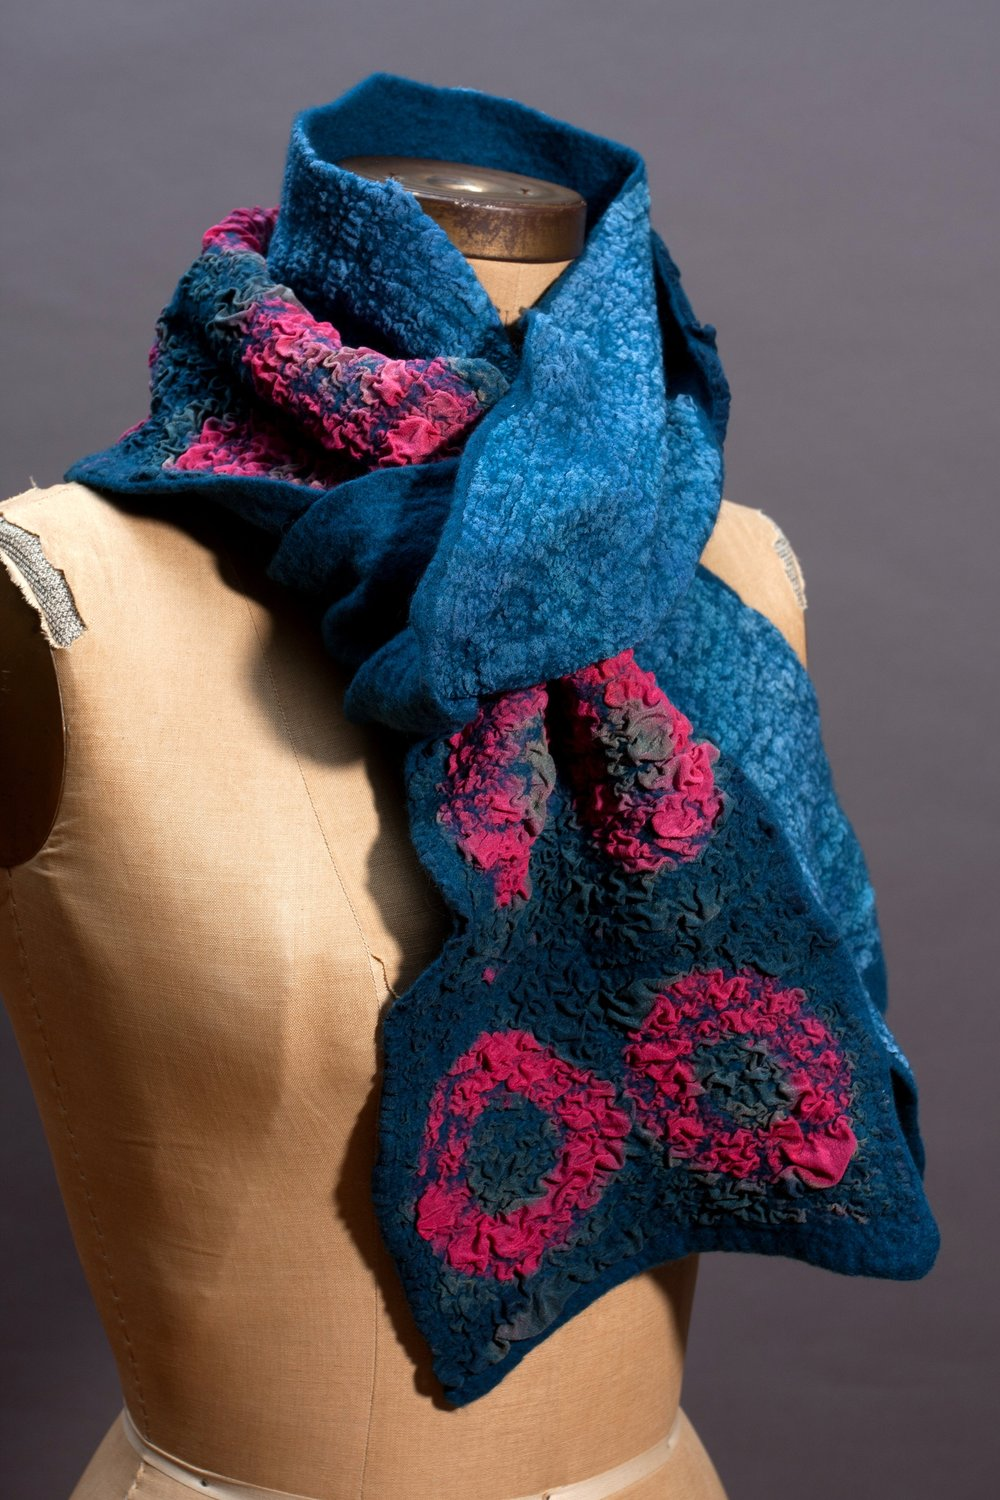 six. nuno felting with hand-dyed silk and merino wool